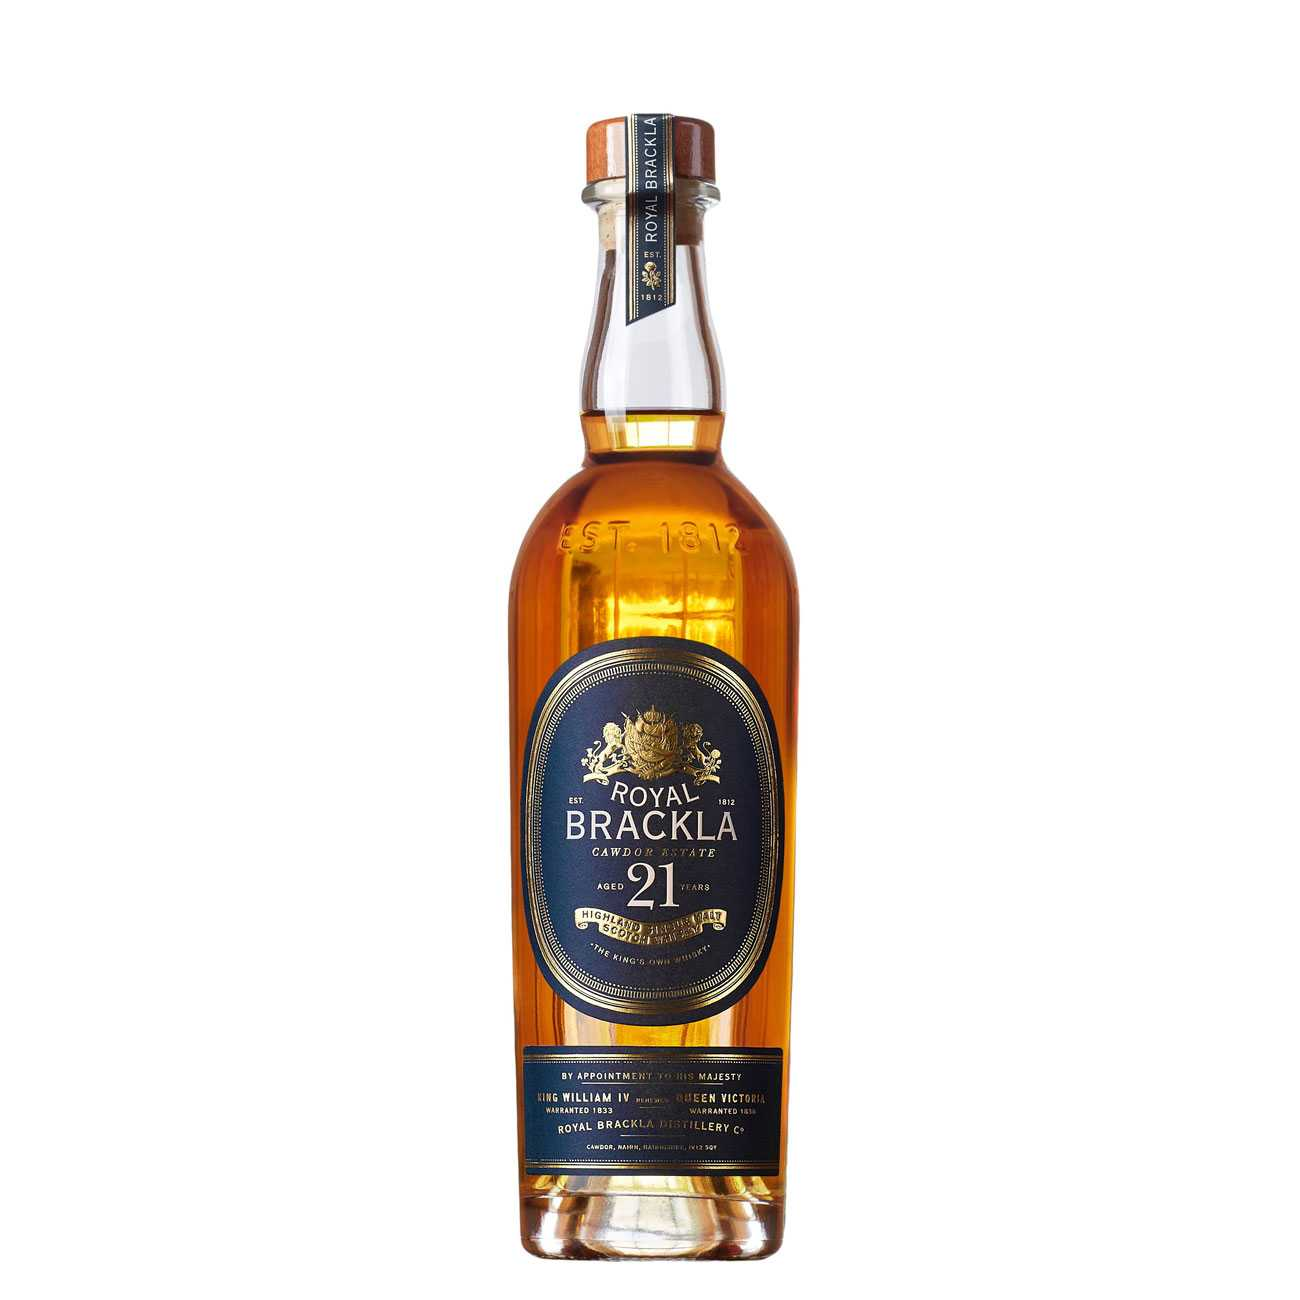 Whisky scotian, 21 YEARS 700 ML, Royal Brackla